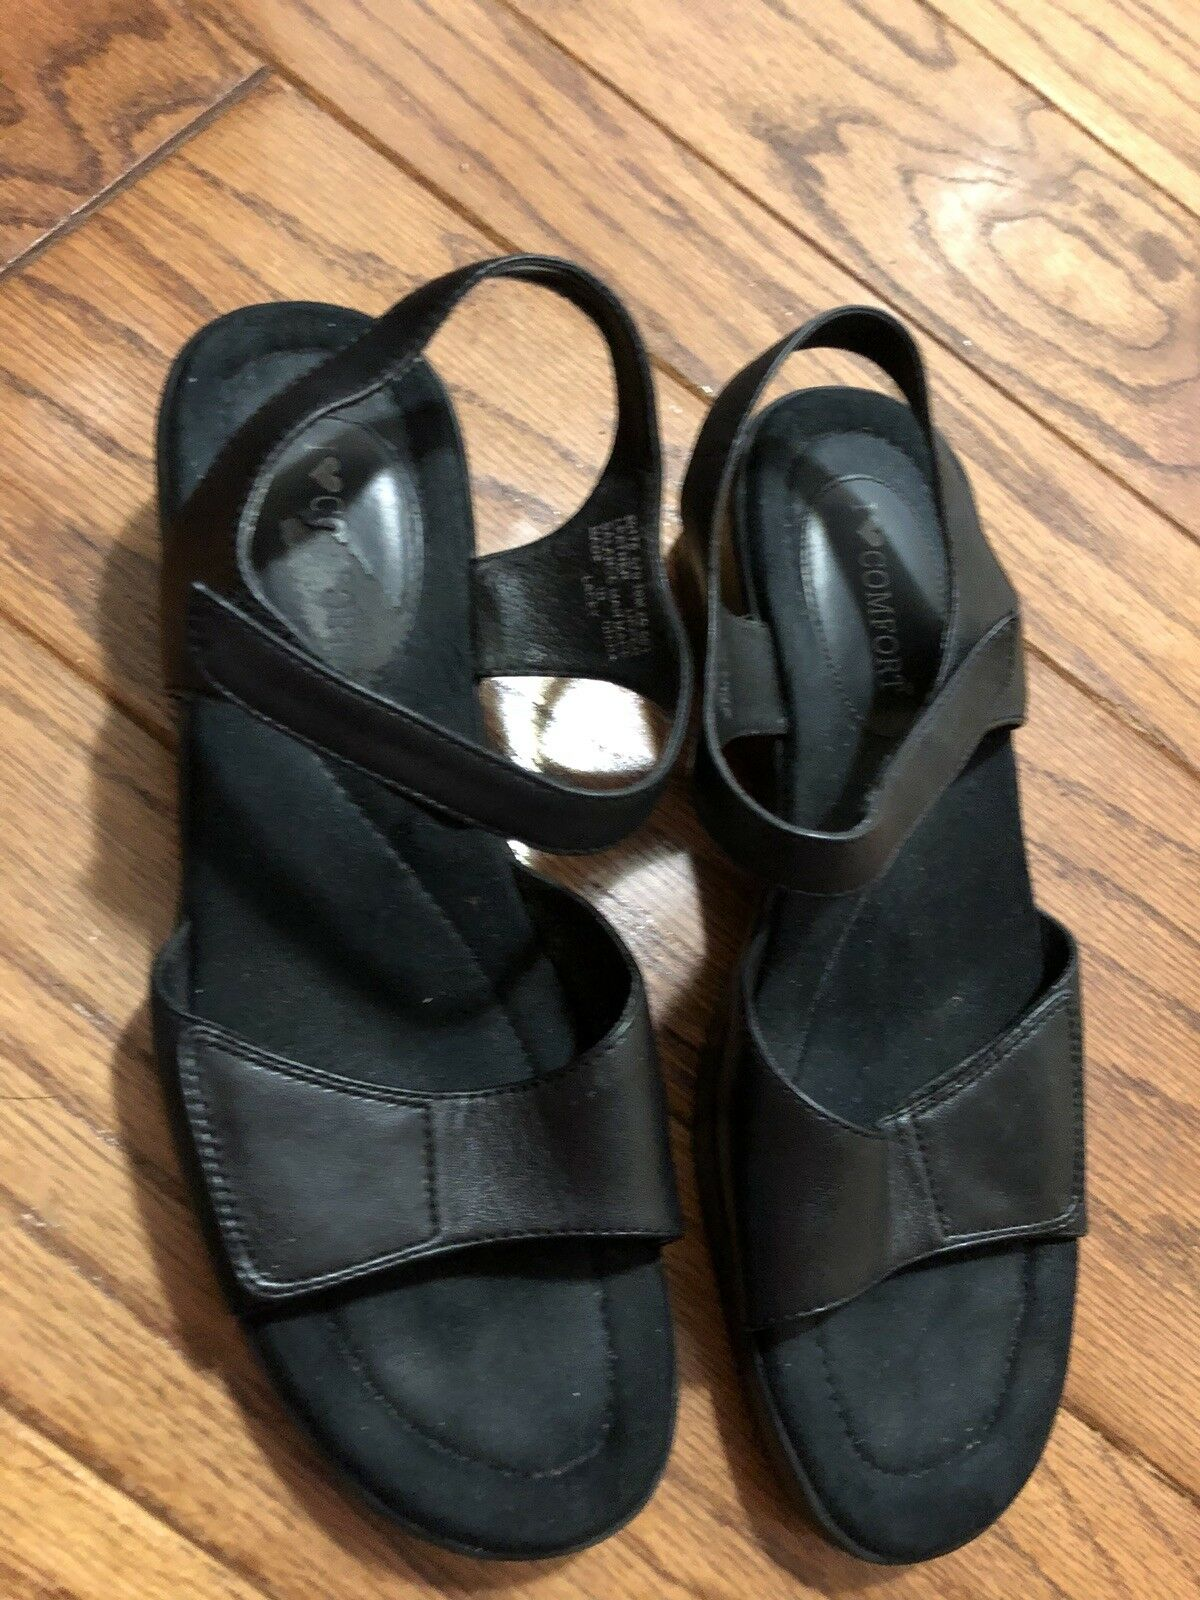 Franco Sarto Wedge Heel Sandals - sz 9.5M - Great Pre-owned Condition!